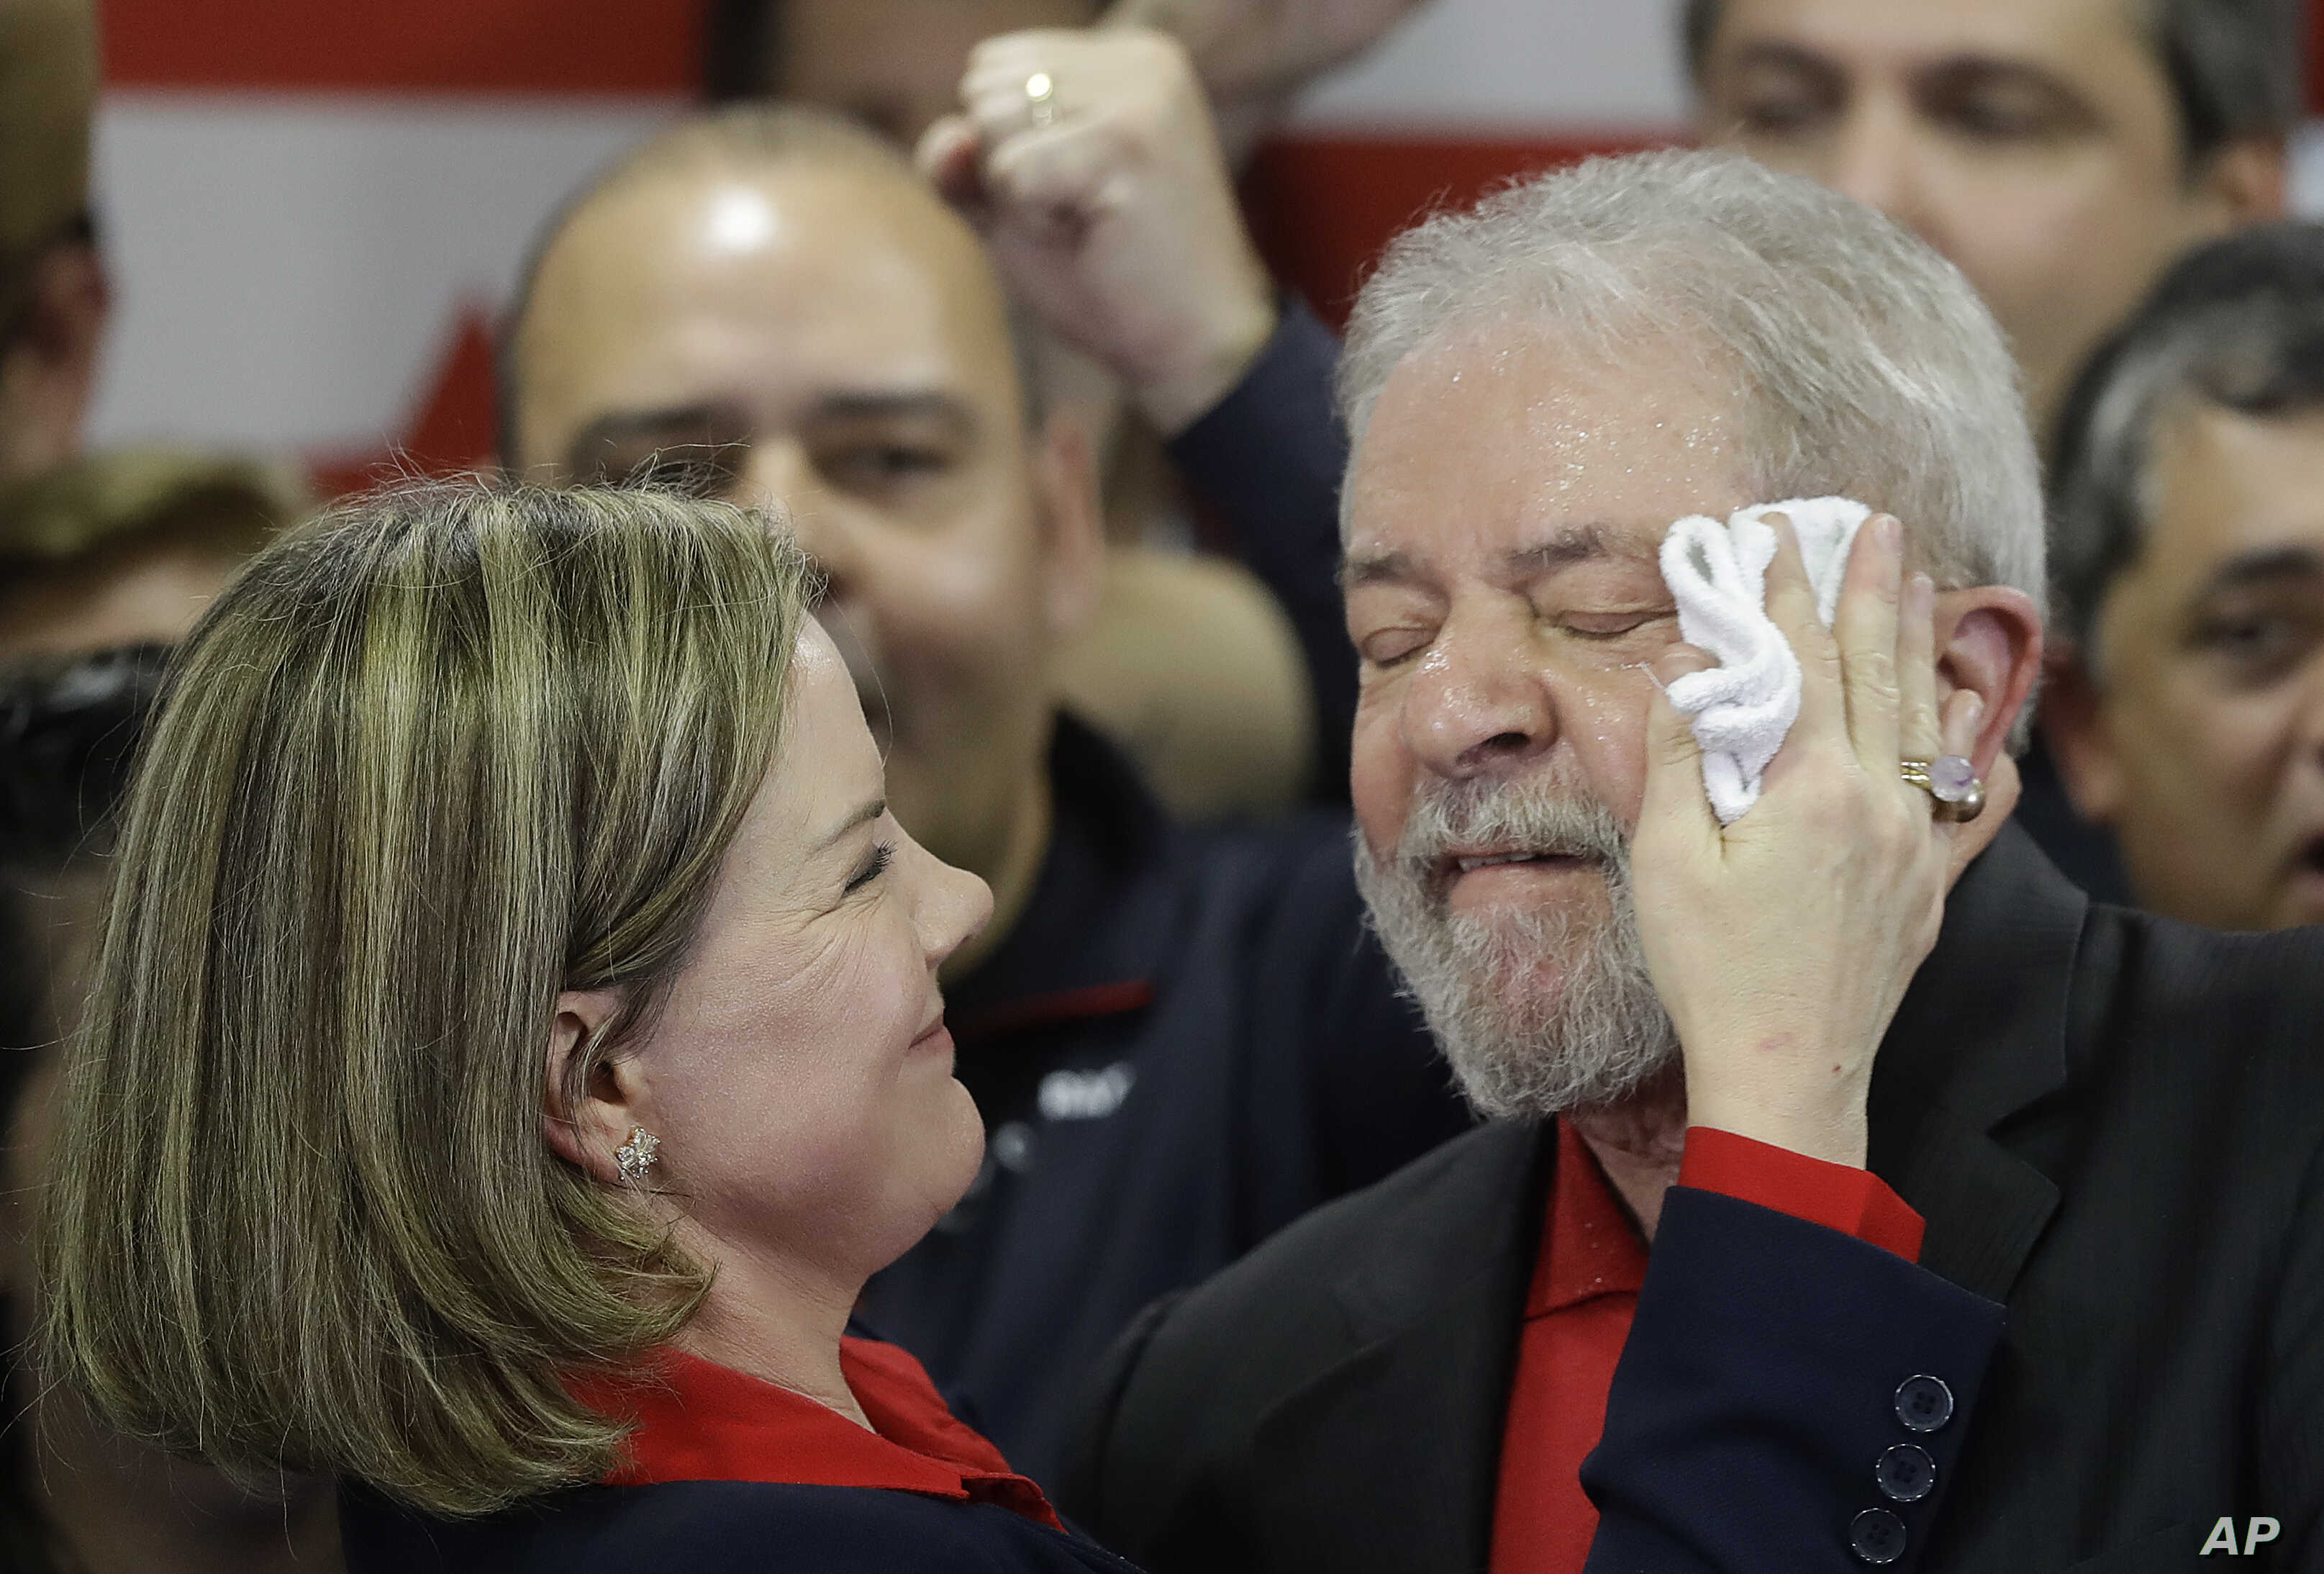 Worker's Party president, Sen. Gleisi Hoffmann, wipes sweat from the face of former Brazilian President Luiz Inacio Lula da Silva at the end of a brief speech he delivered to media and supporters at the party's headquarters in Sao Paulo, Brazil, Thur